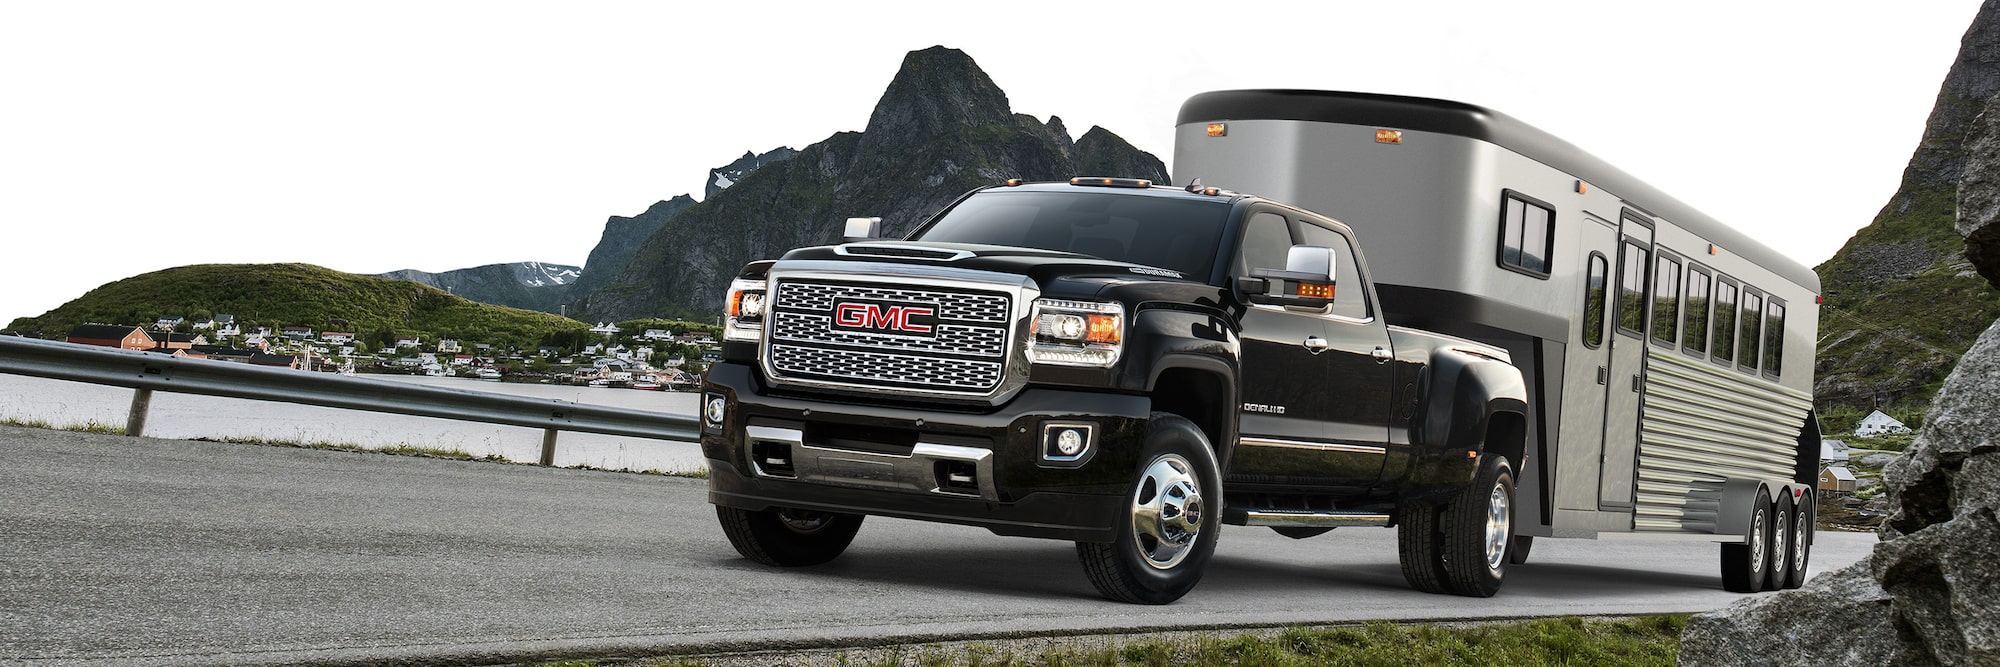 hight resolution of gmc life sierra hd 5th wheel package